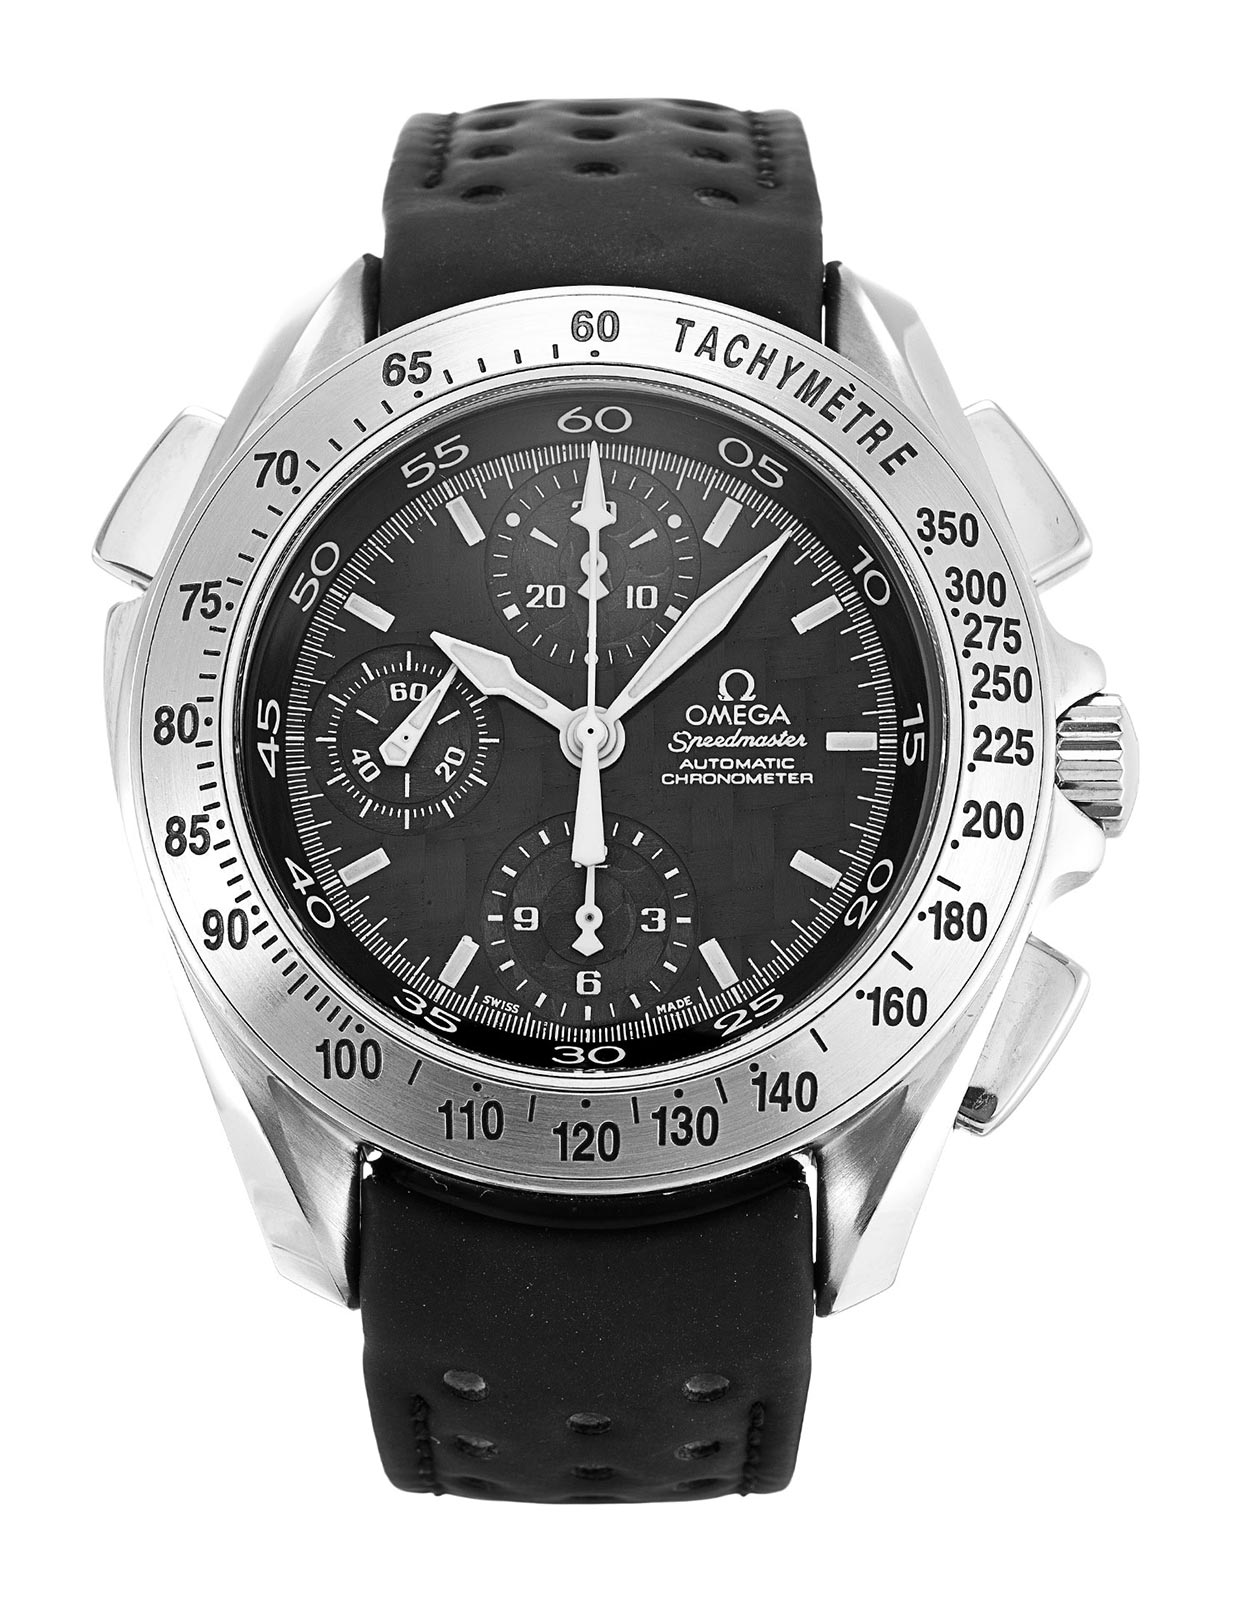 Come To Look At The Rare Omega Speedmaster Rattrapante Chronometer Replica Watch